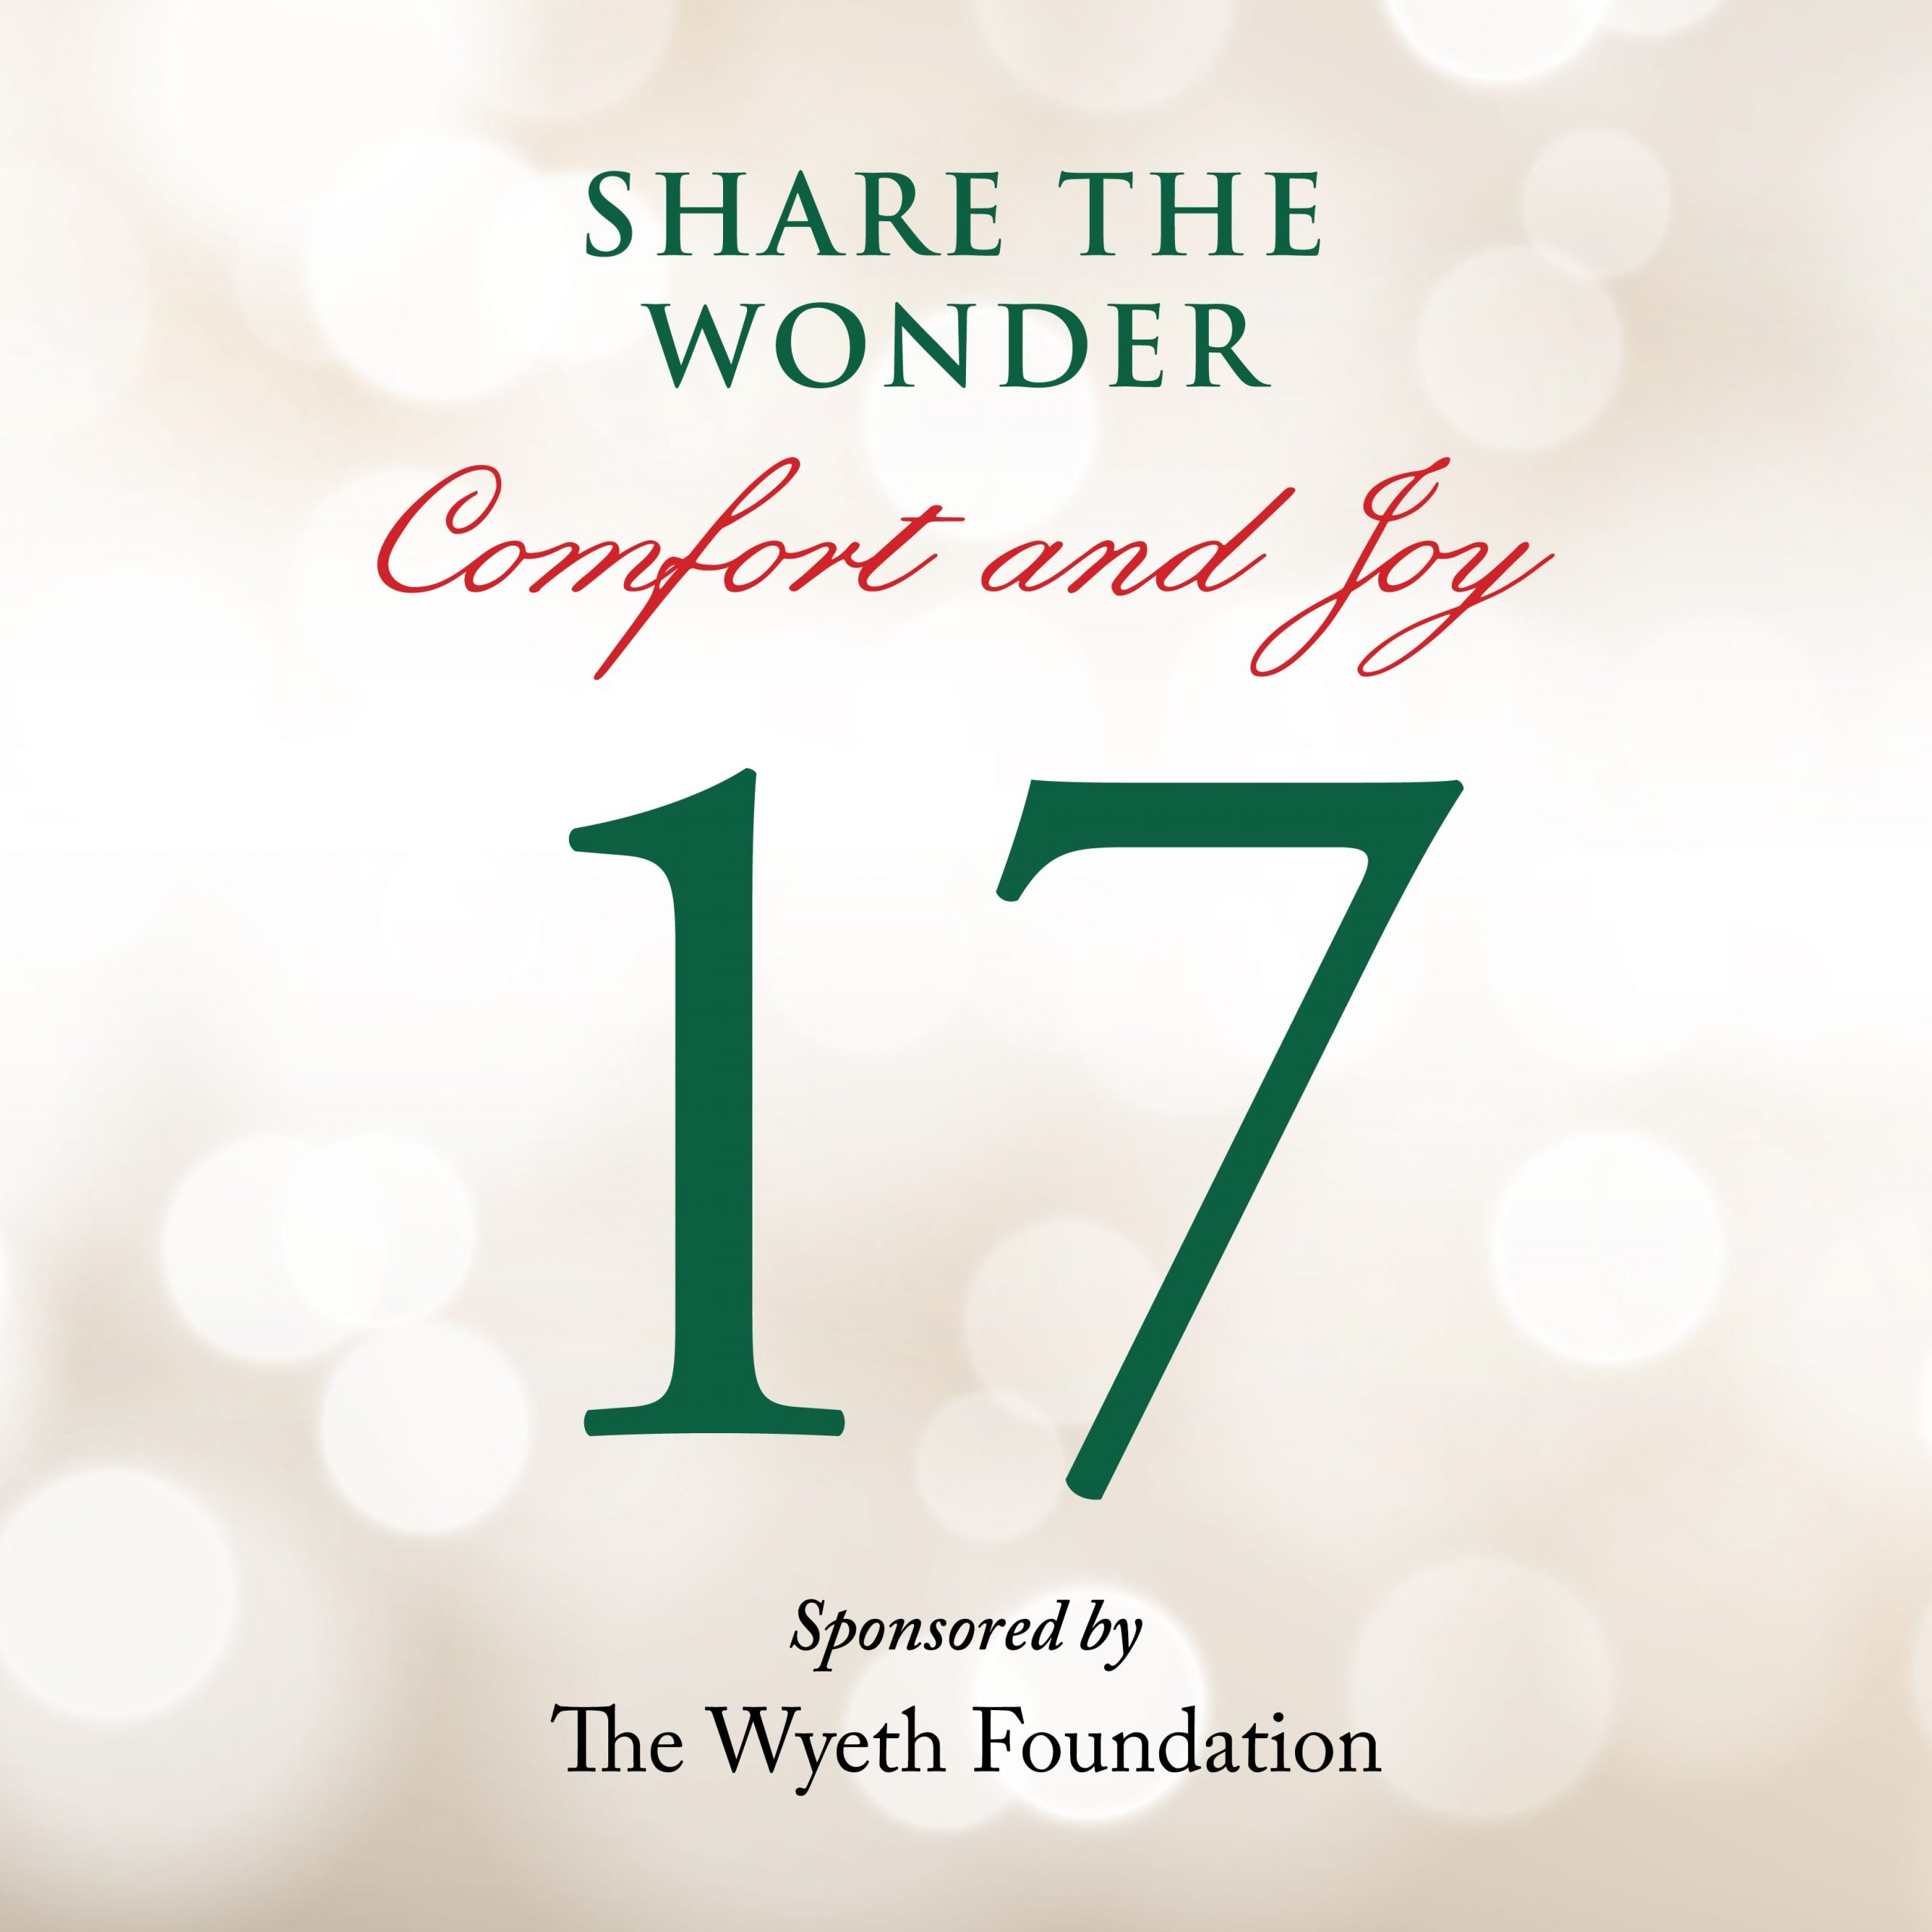 Day 17 of Share the Wonder: December 14